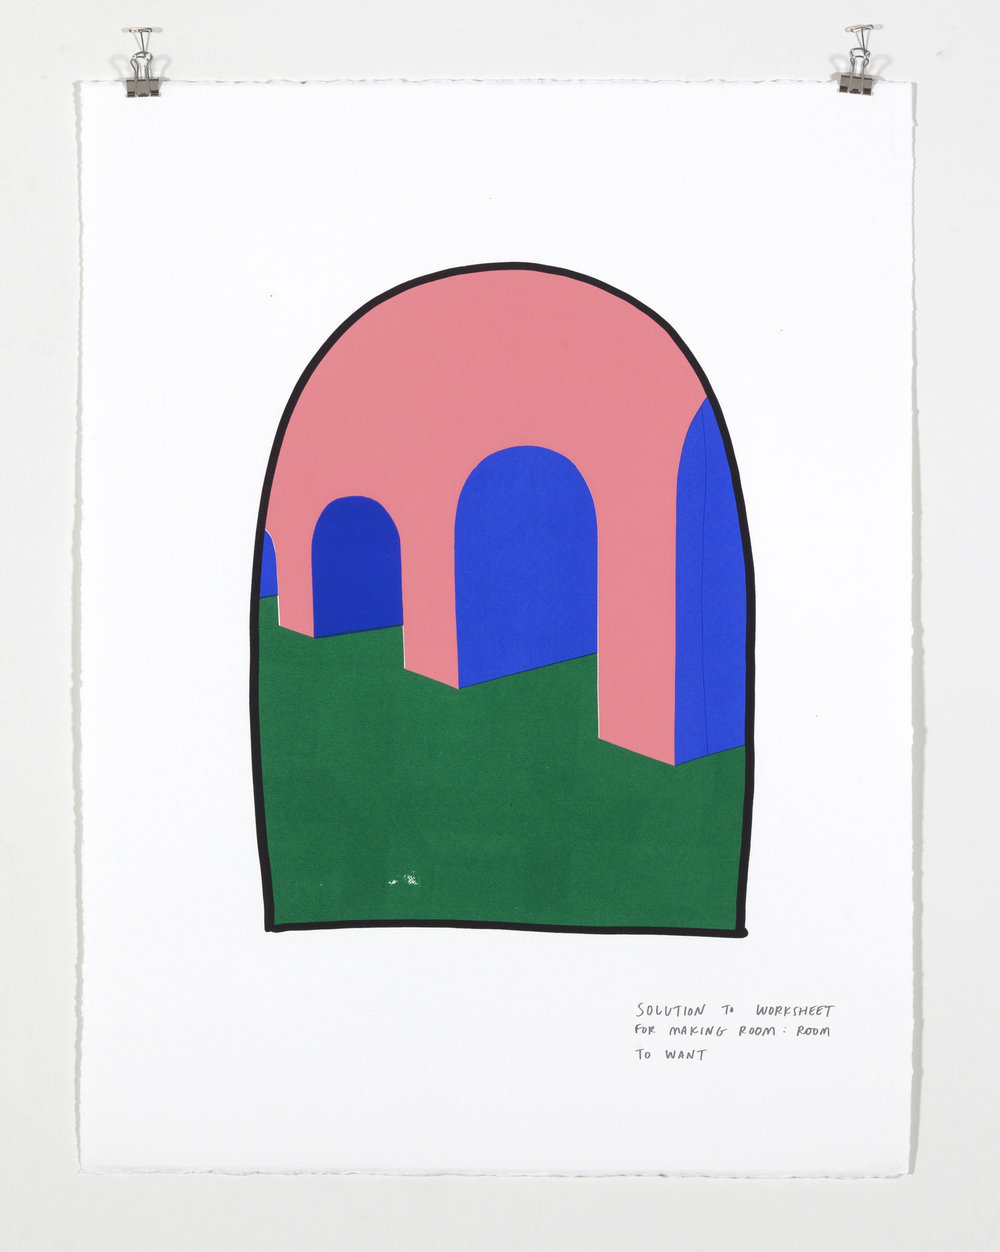 Solution to Worksheet for Making Room: Room to Want,  2018  Five color silkscreen print on paper 19 7/8 x 25 7/8 inches